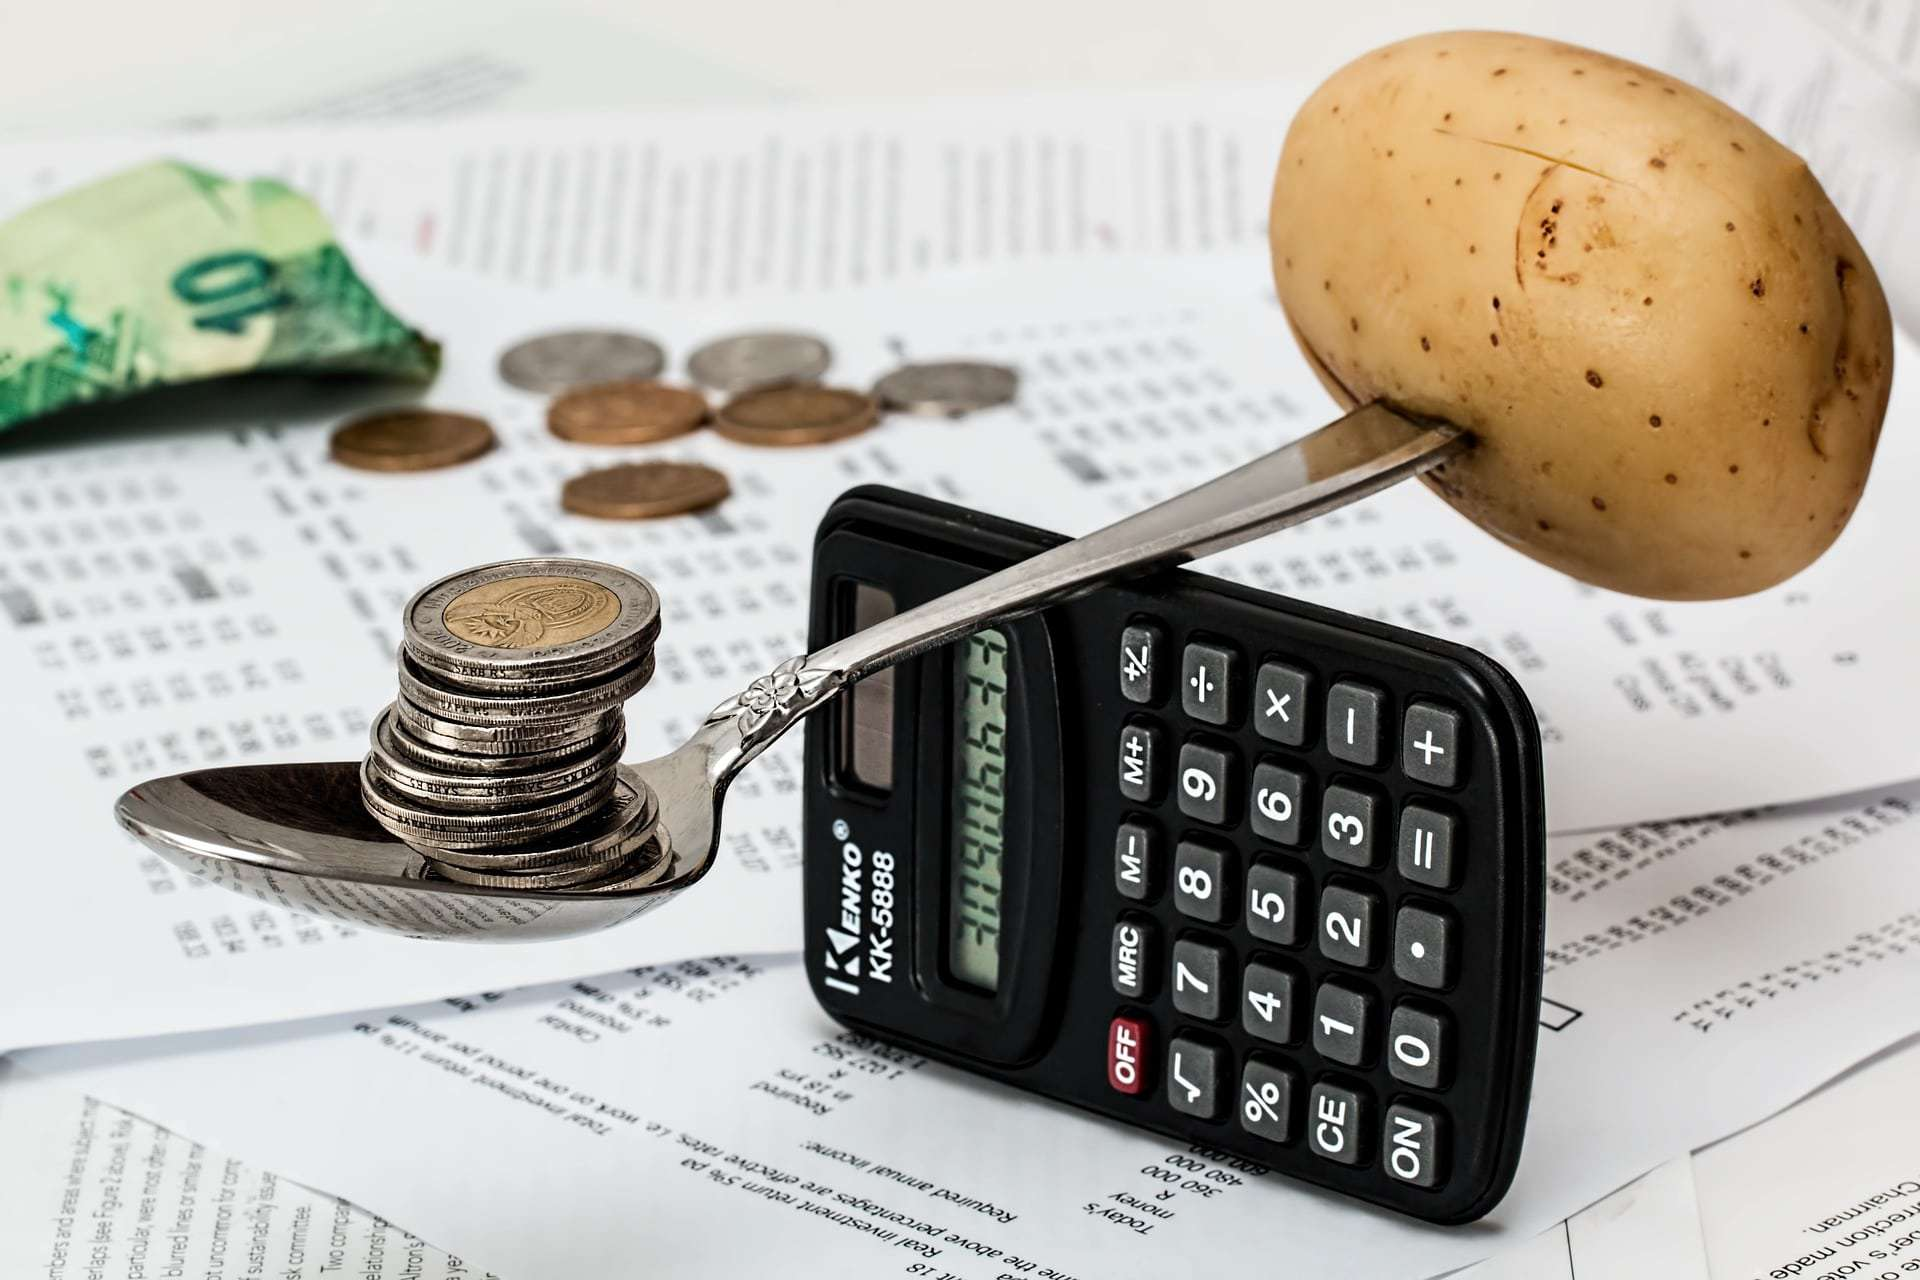 Potato and coins on a calculator -- You can find lots of surprise birthday party ideas even if you're on a budget